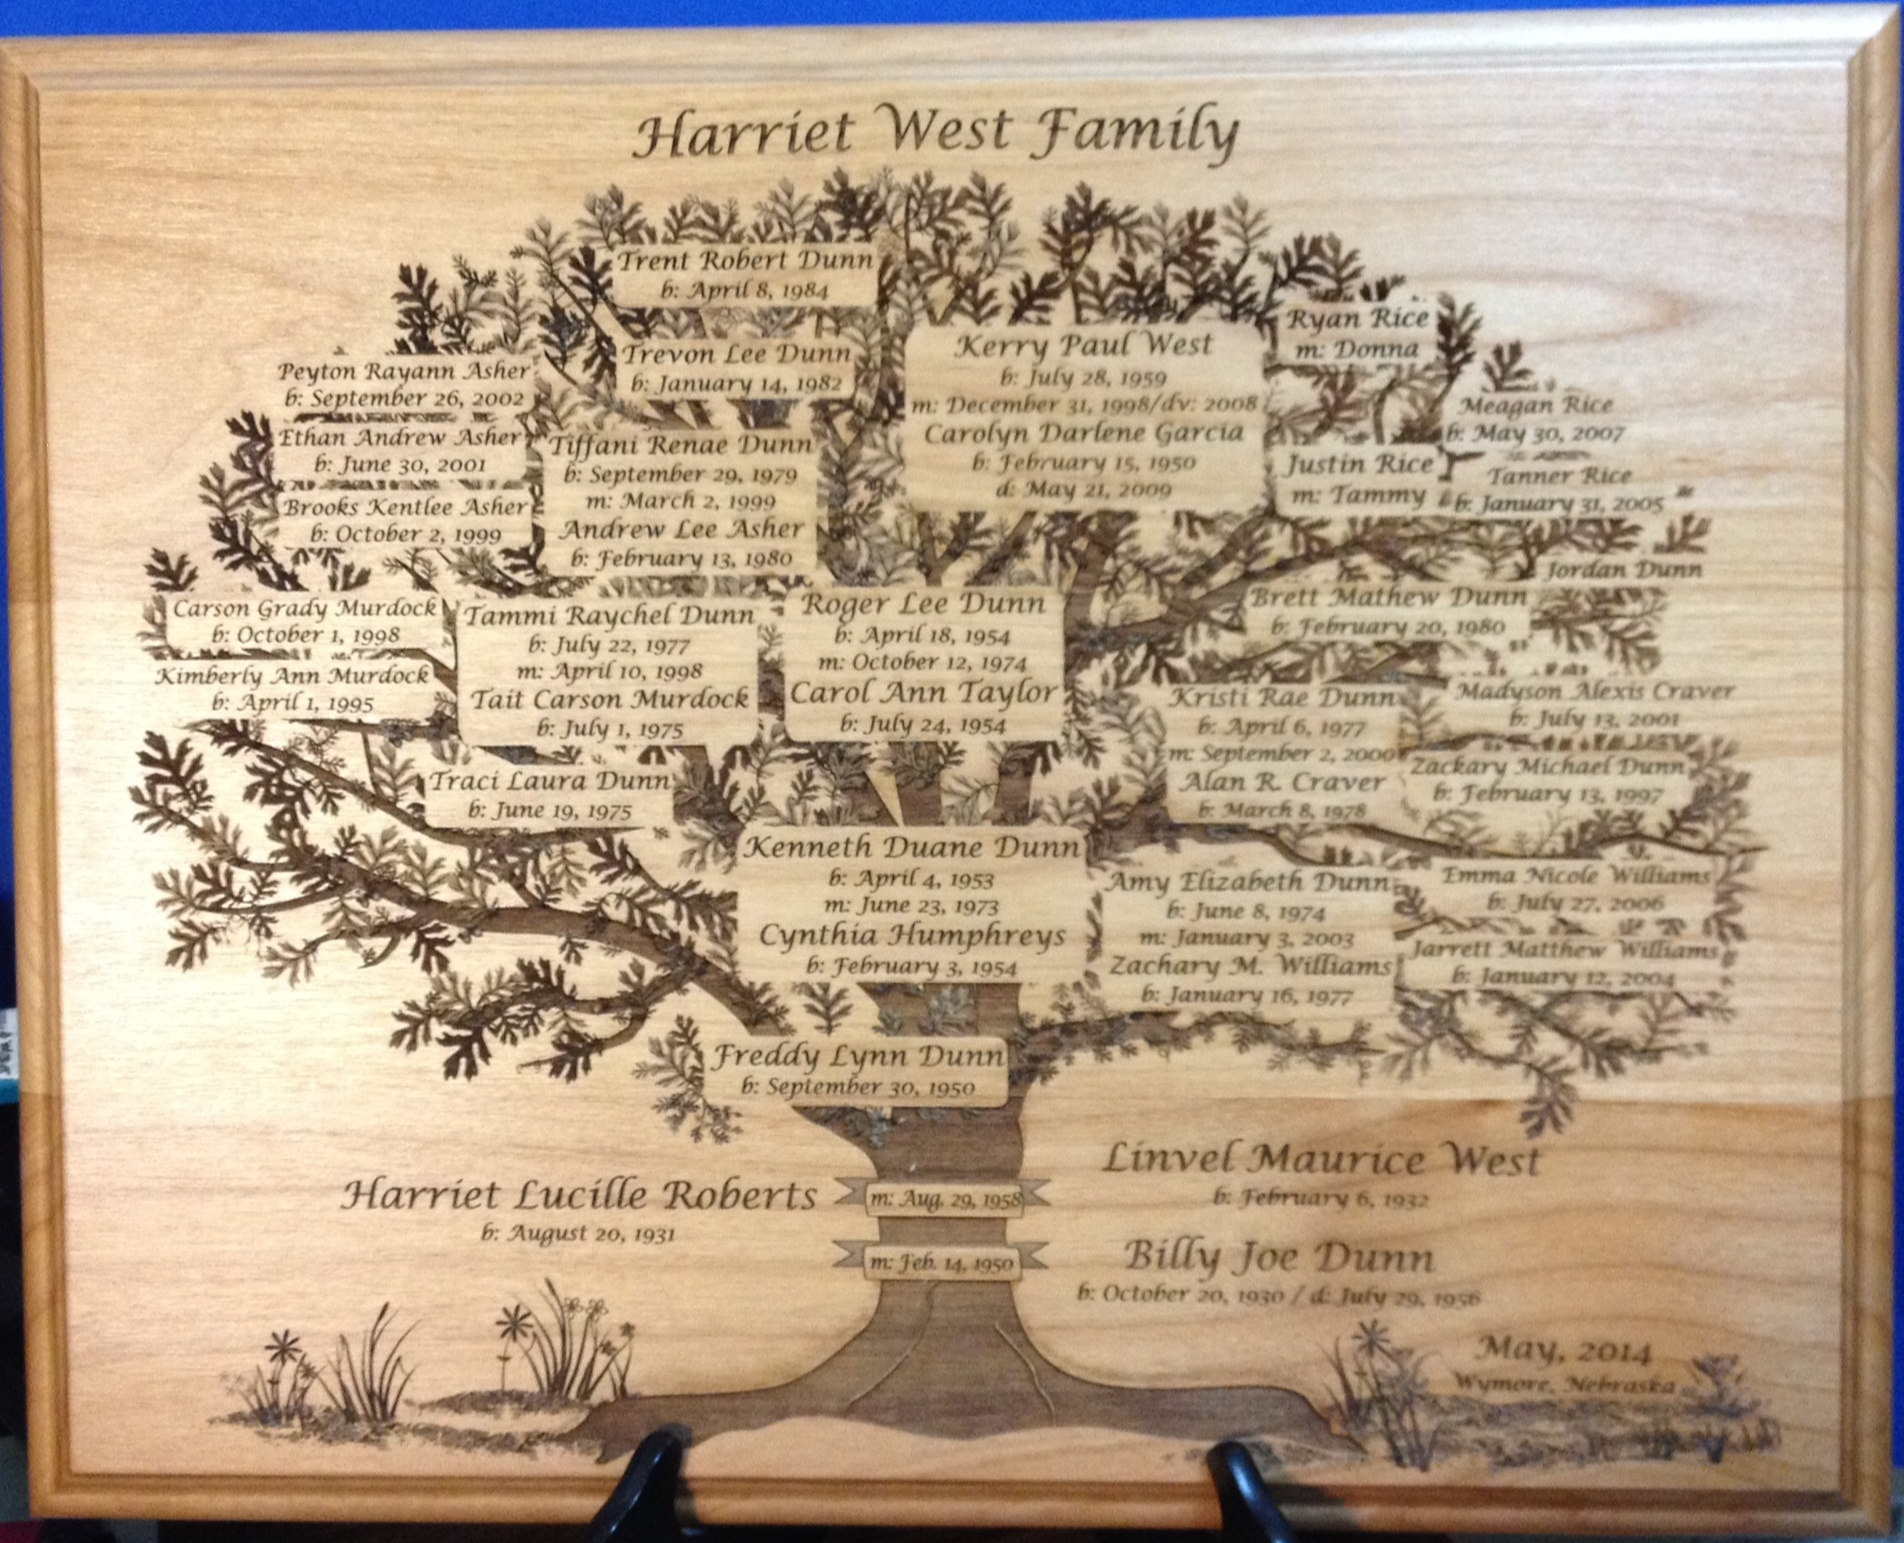 Harriet West Family Tree Plaque